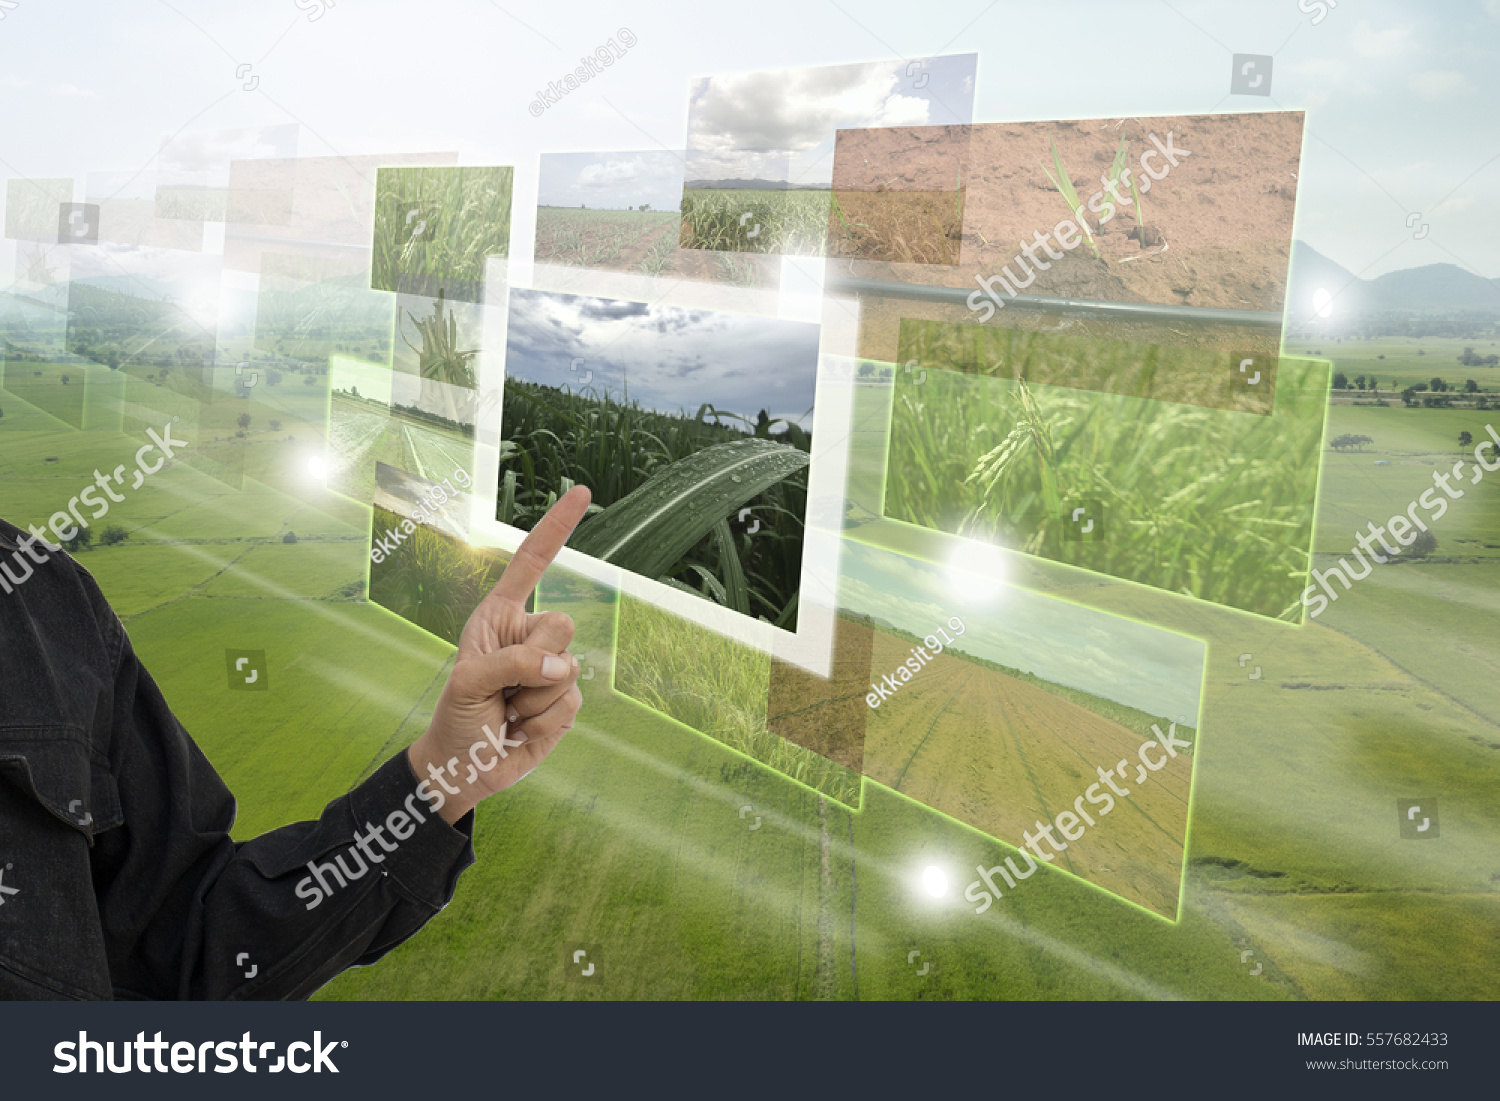 Internet of things(agriculture concept),smart farming,industrial agriculture.Farmer point hand to use augmented reality technology to control ,monitor and management in the farm #557682433